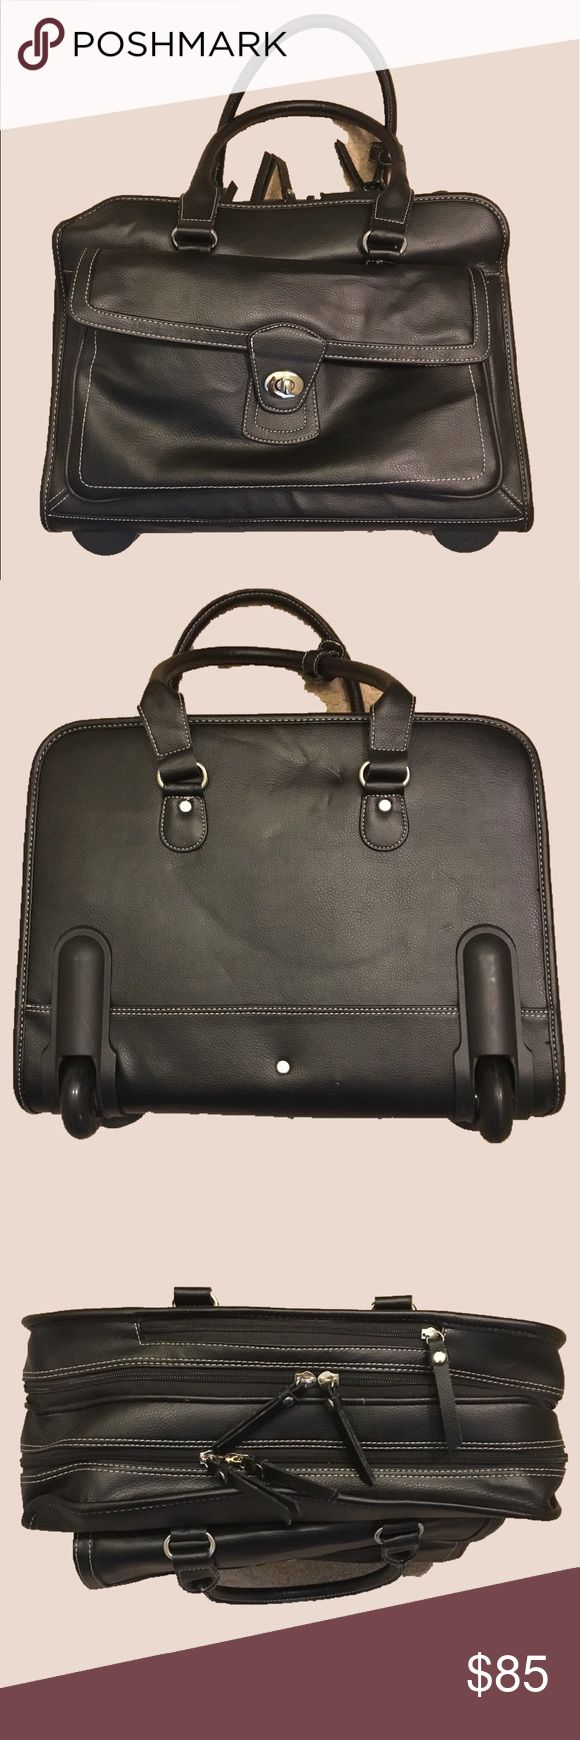 Laptop bags office depot - Samsonite Rolling Briefcase Brand New